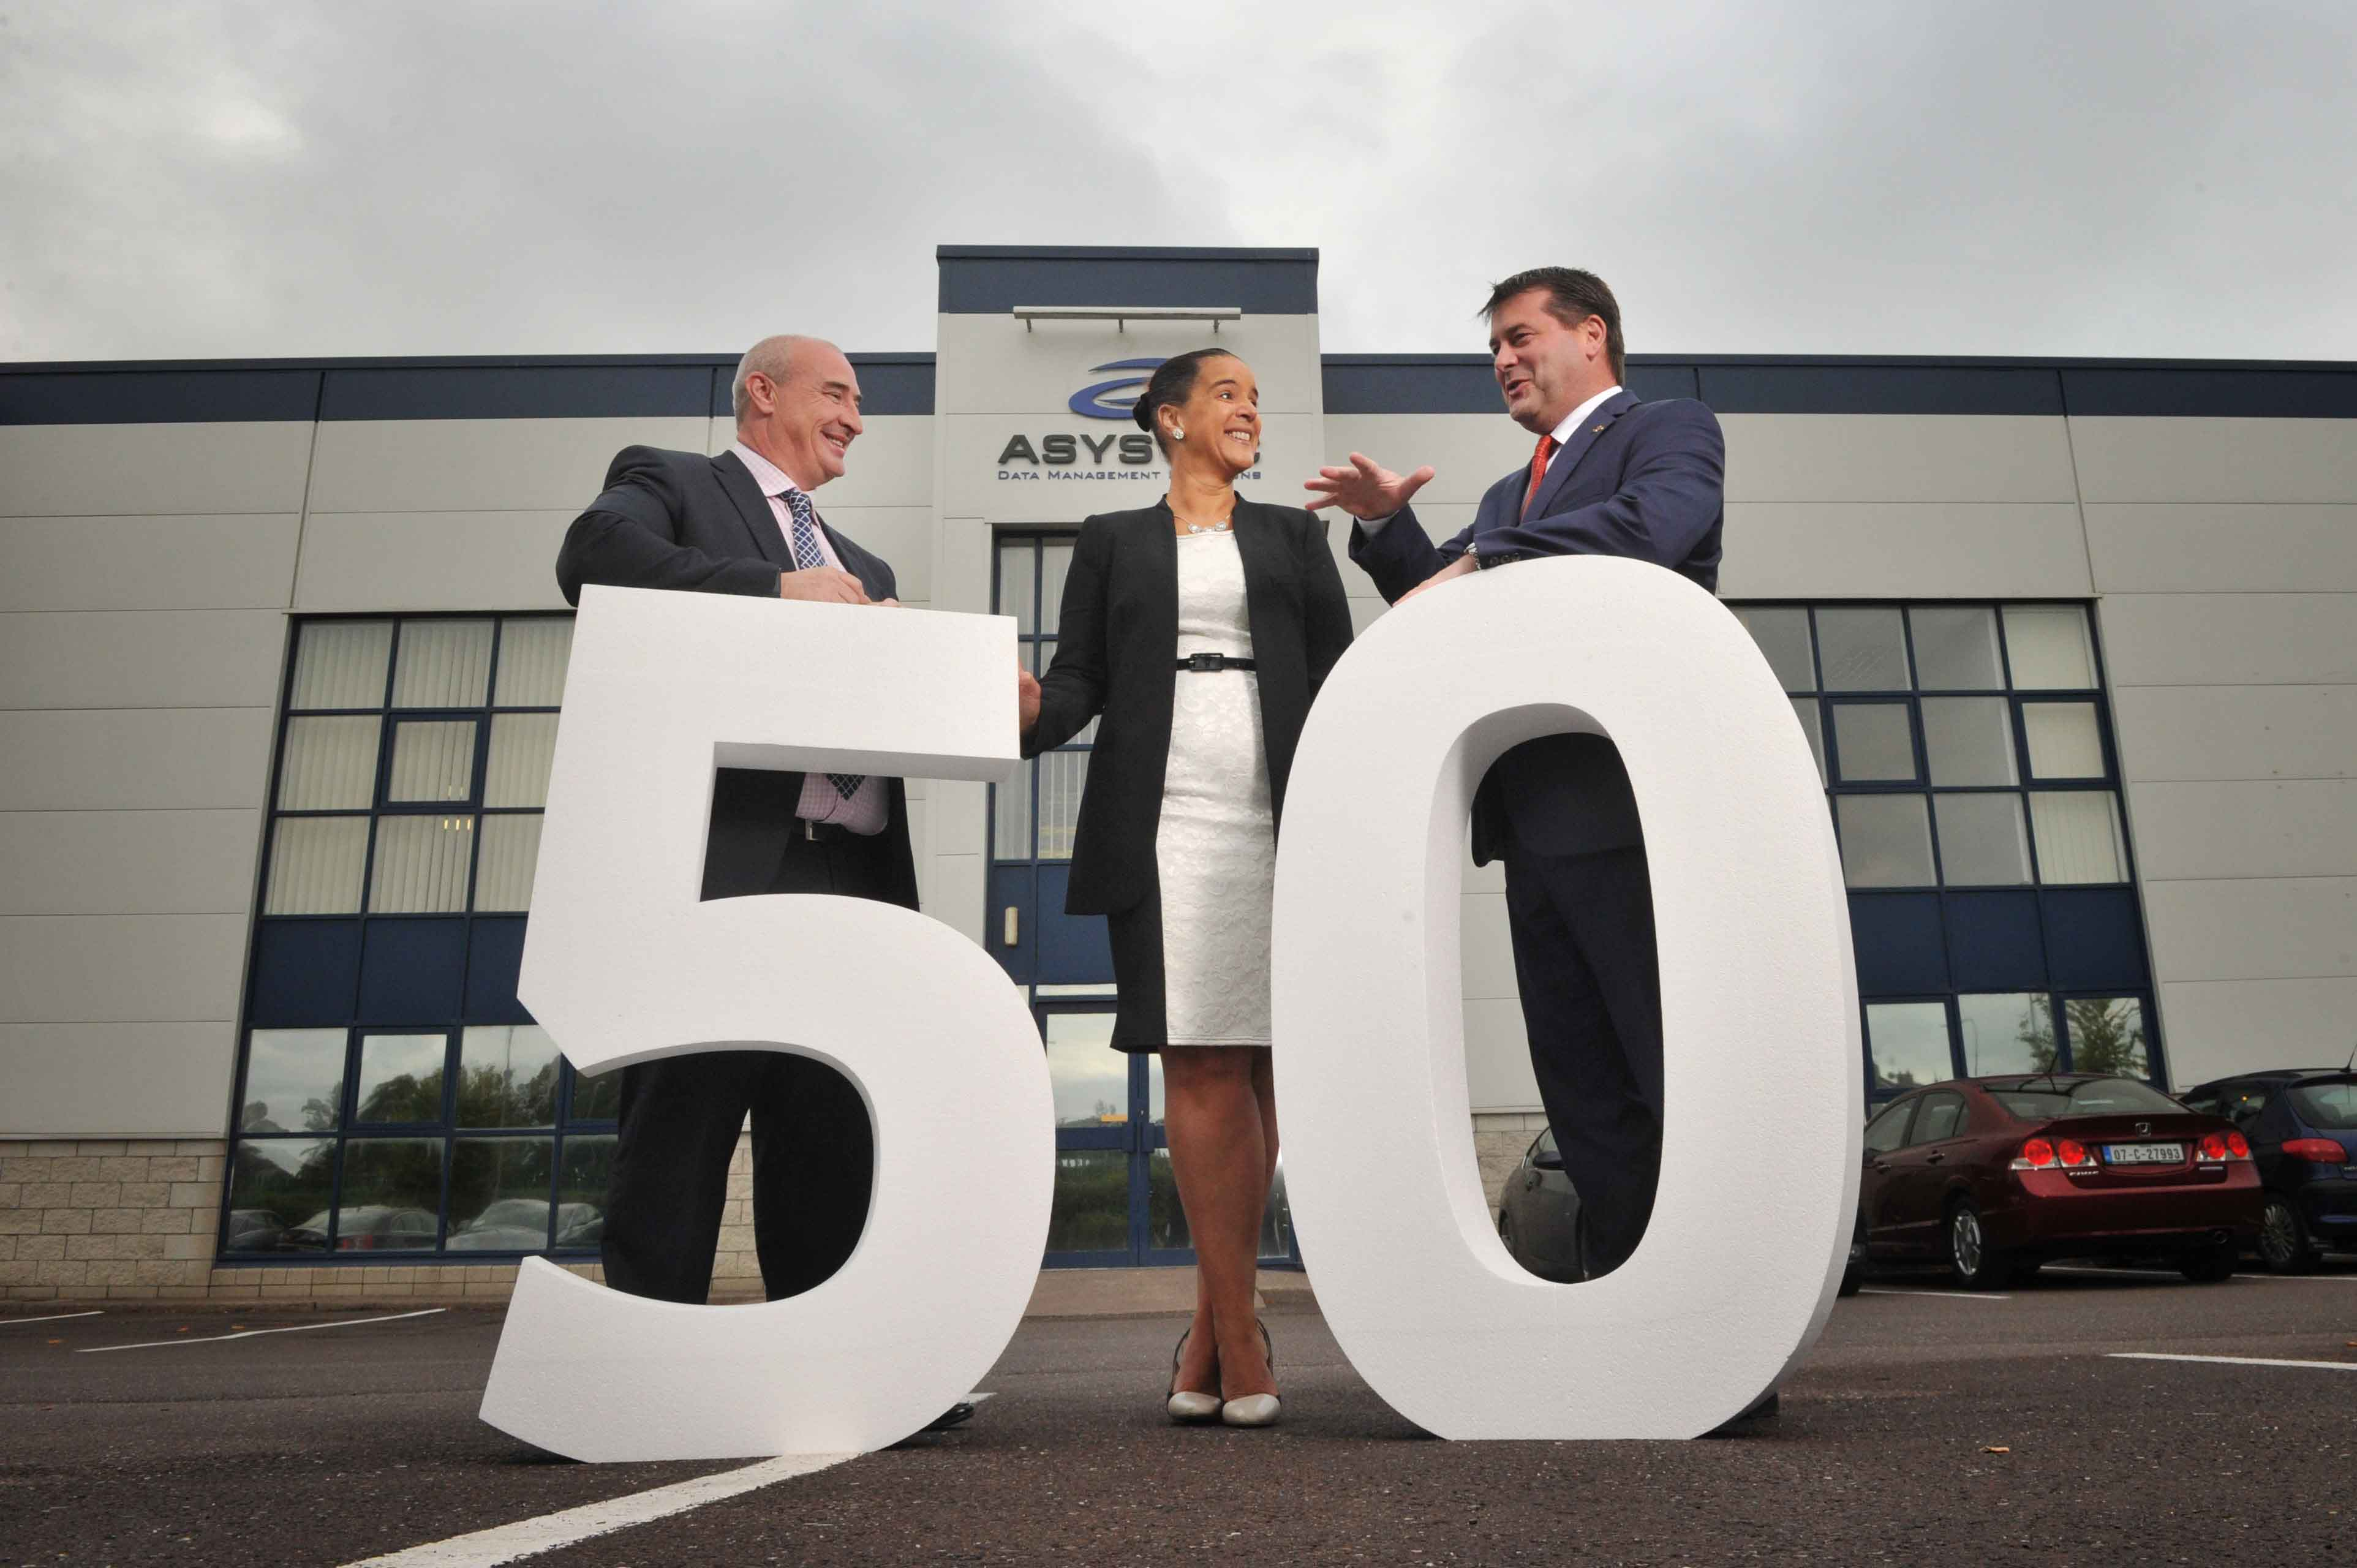 Asystec announces 50 new highly skilled jobs